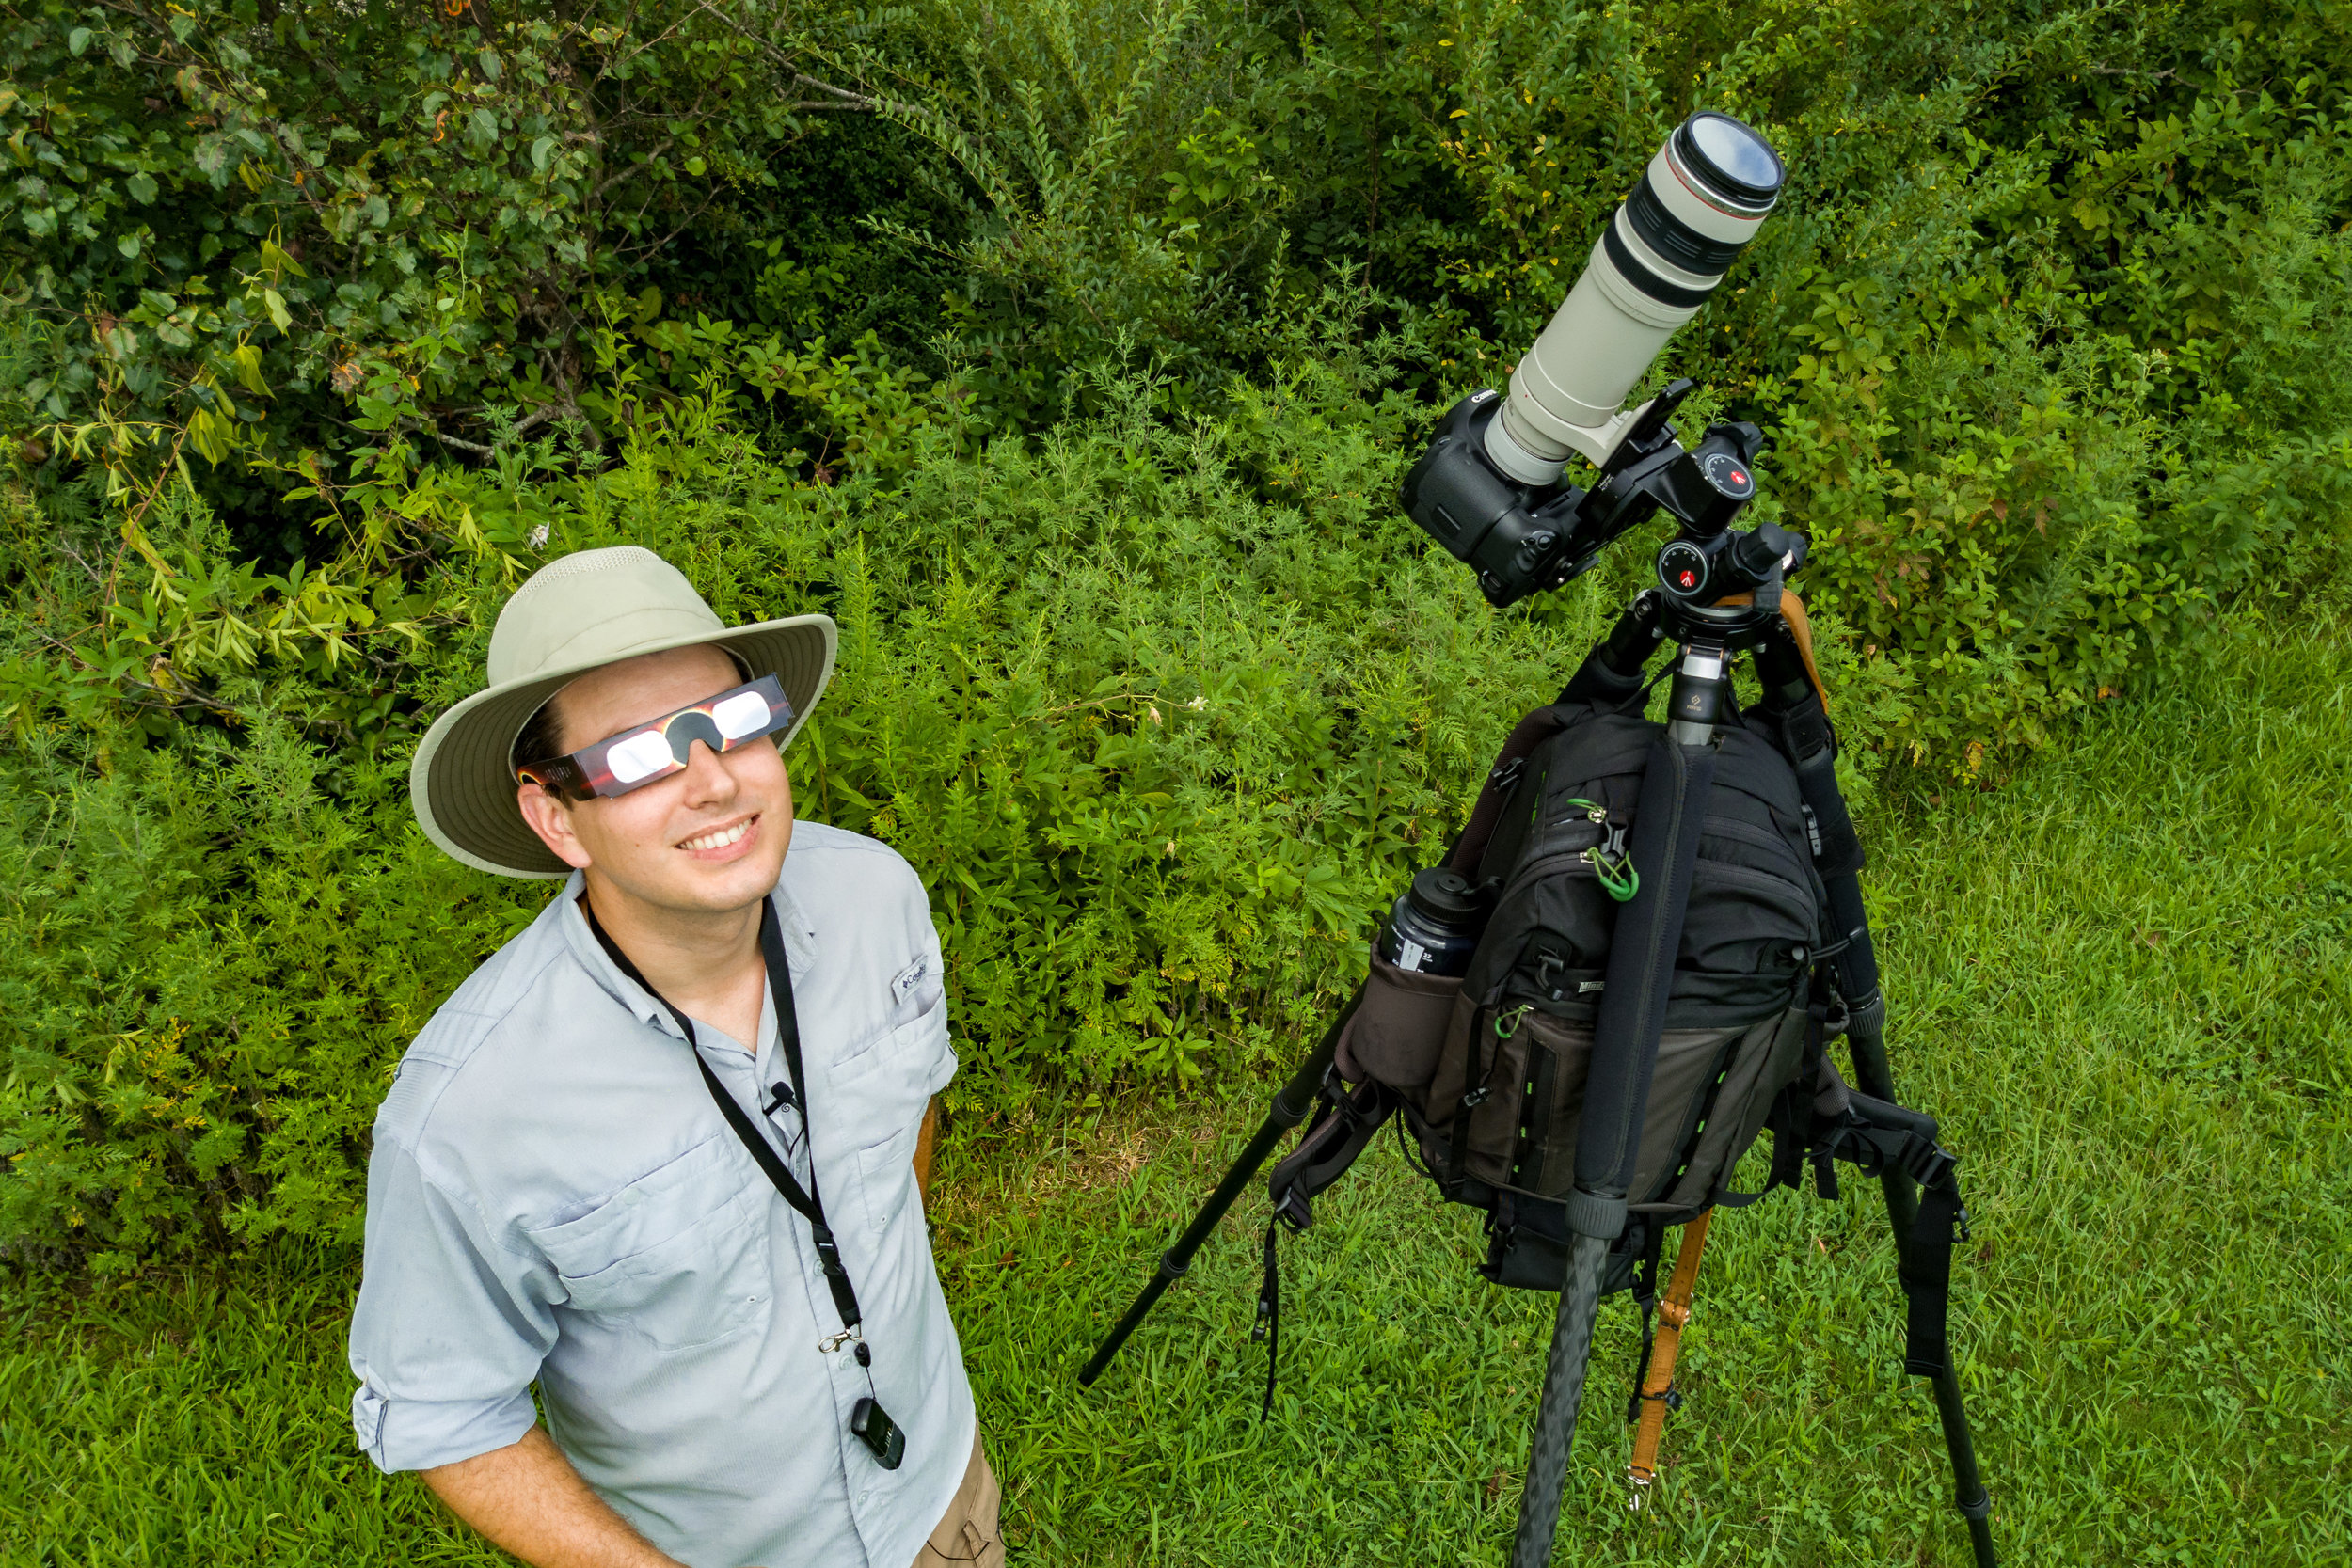 Yours truly in full eclipse photography attire. Solar filter and glasses in place, function trumped fashion for the day.